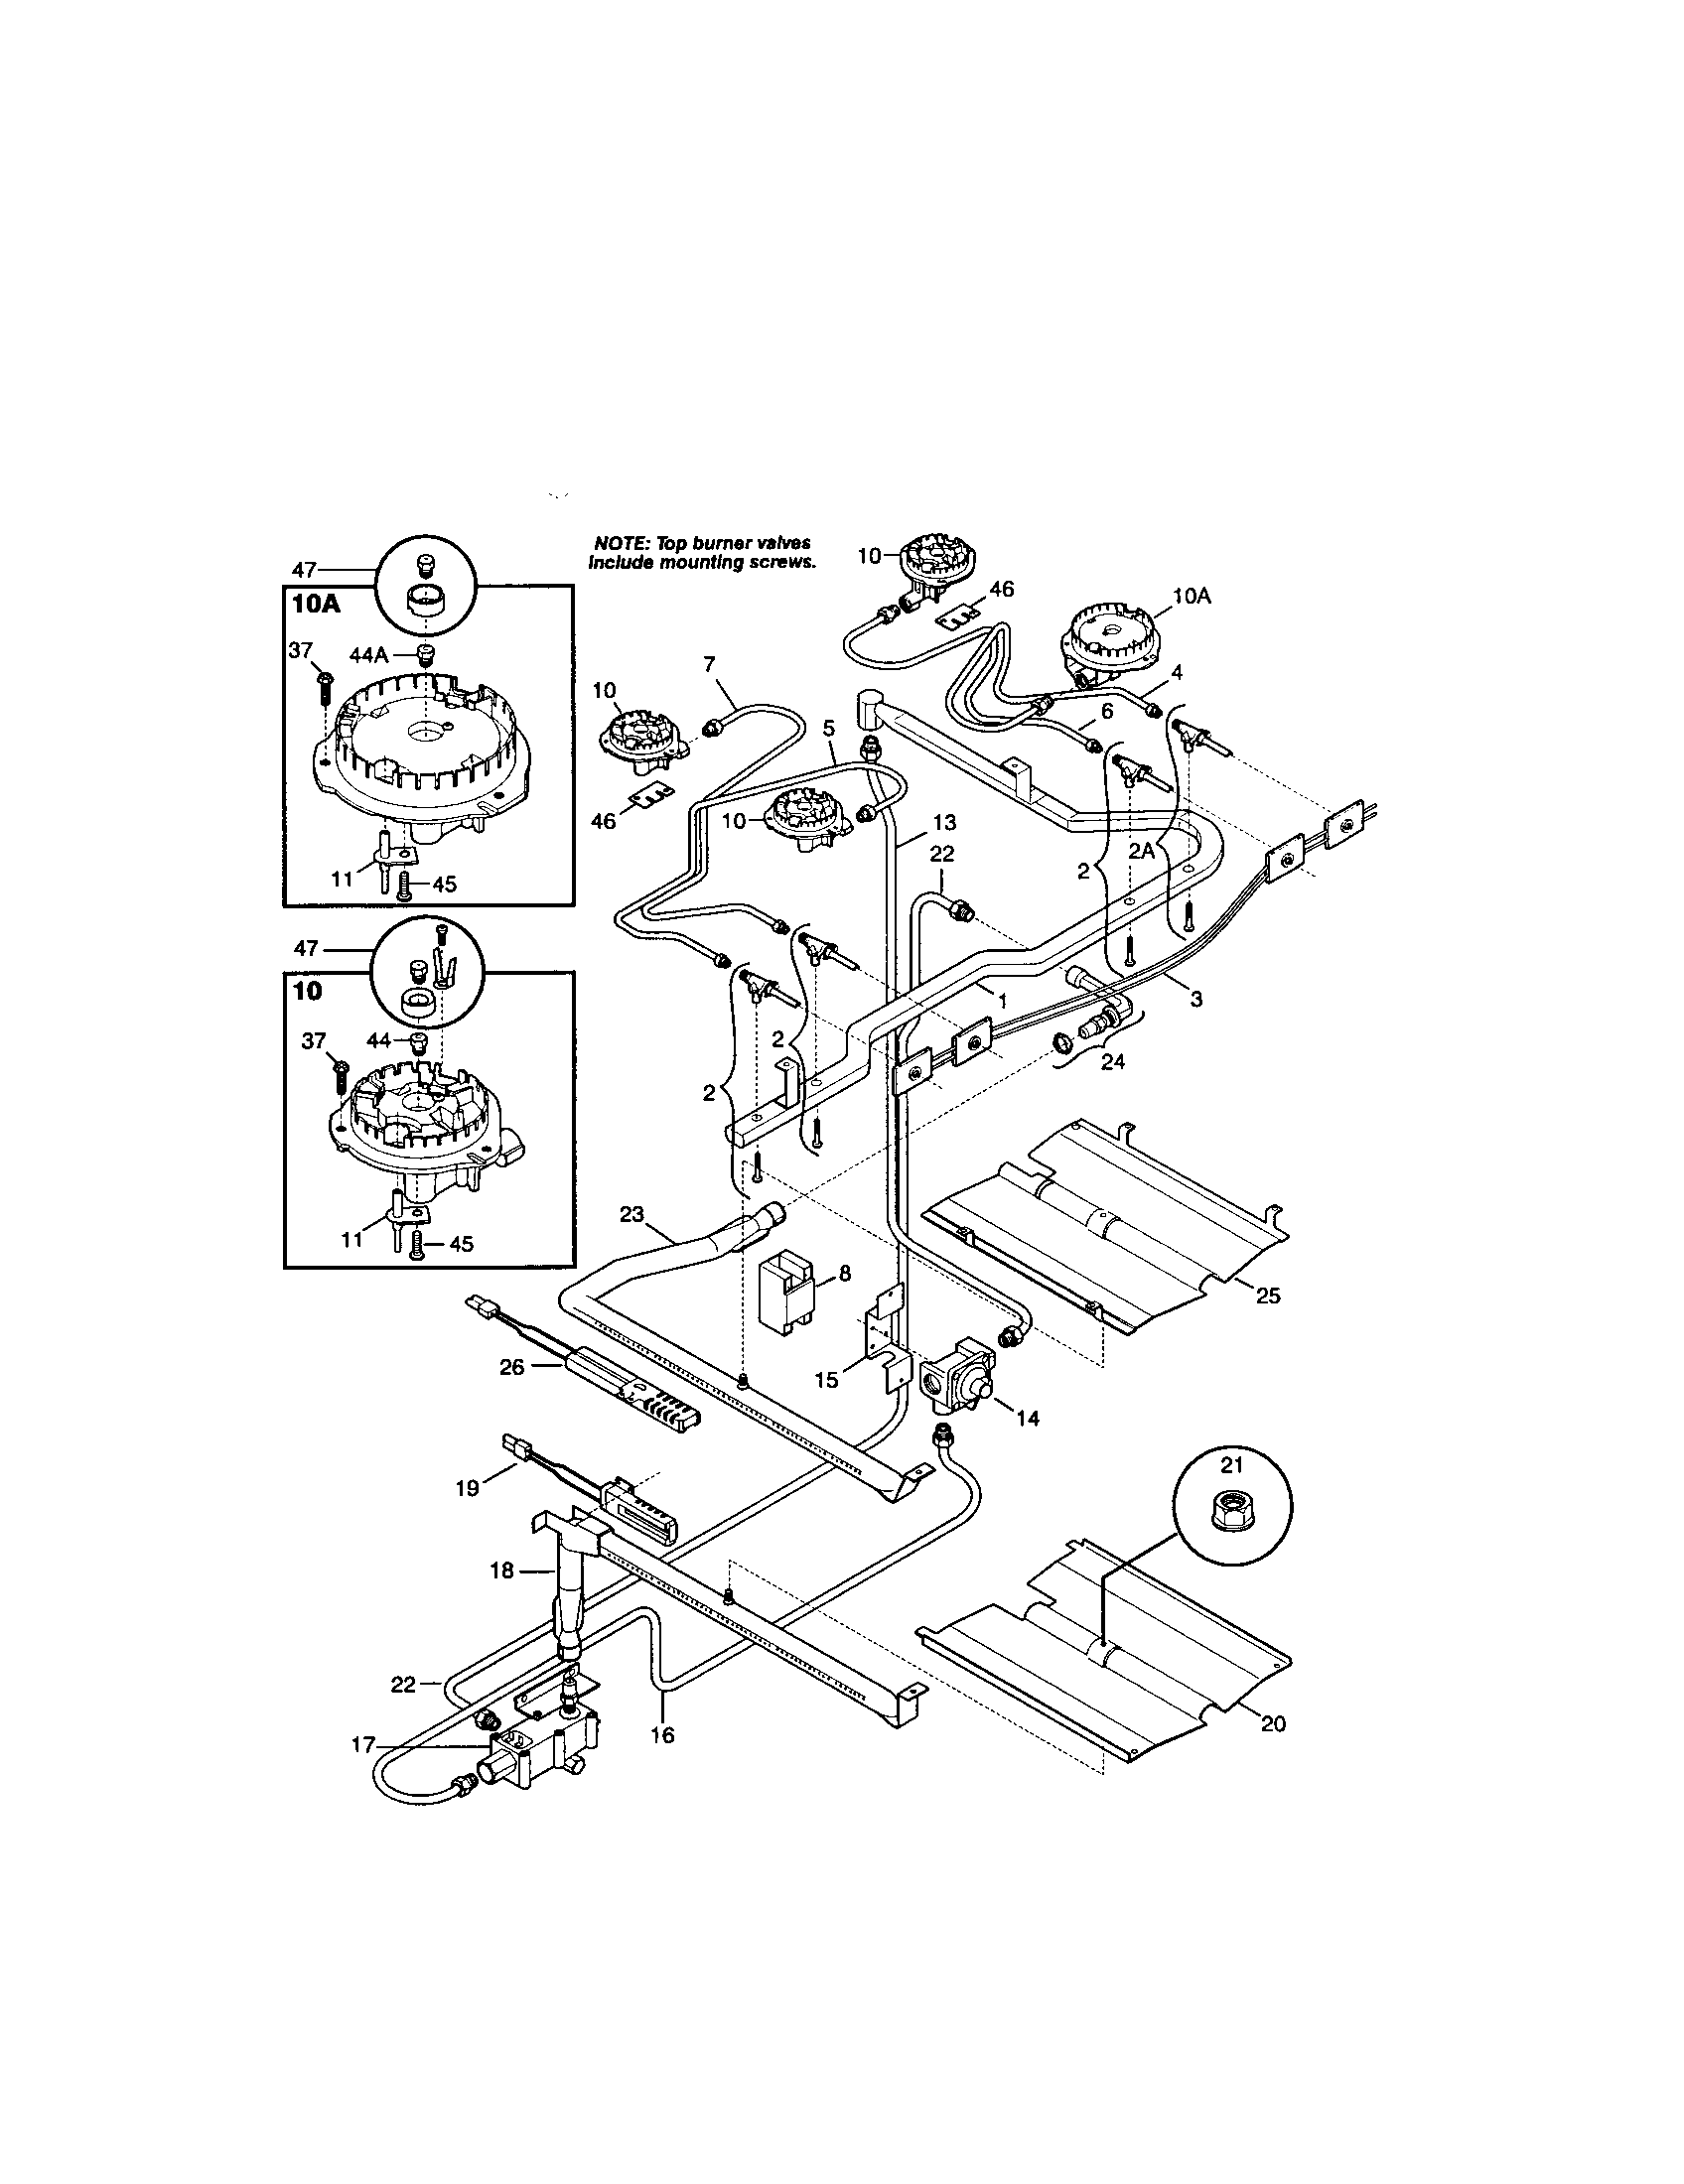 kenmore range parts diagram ryobi trimmer fuel line model number location get free image about